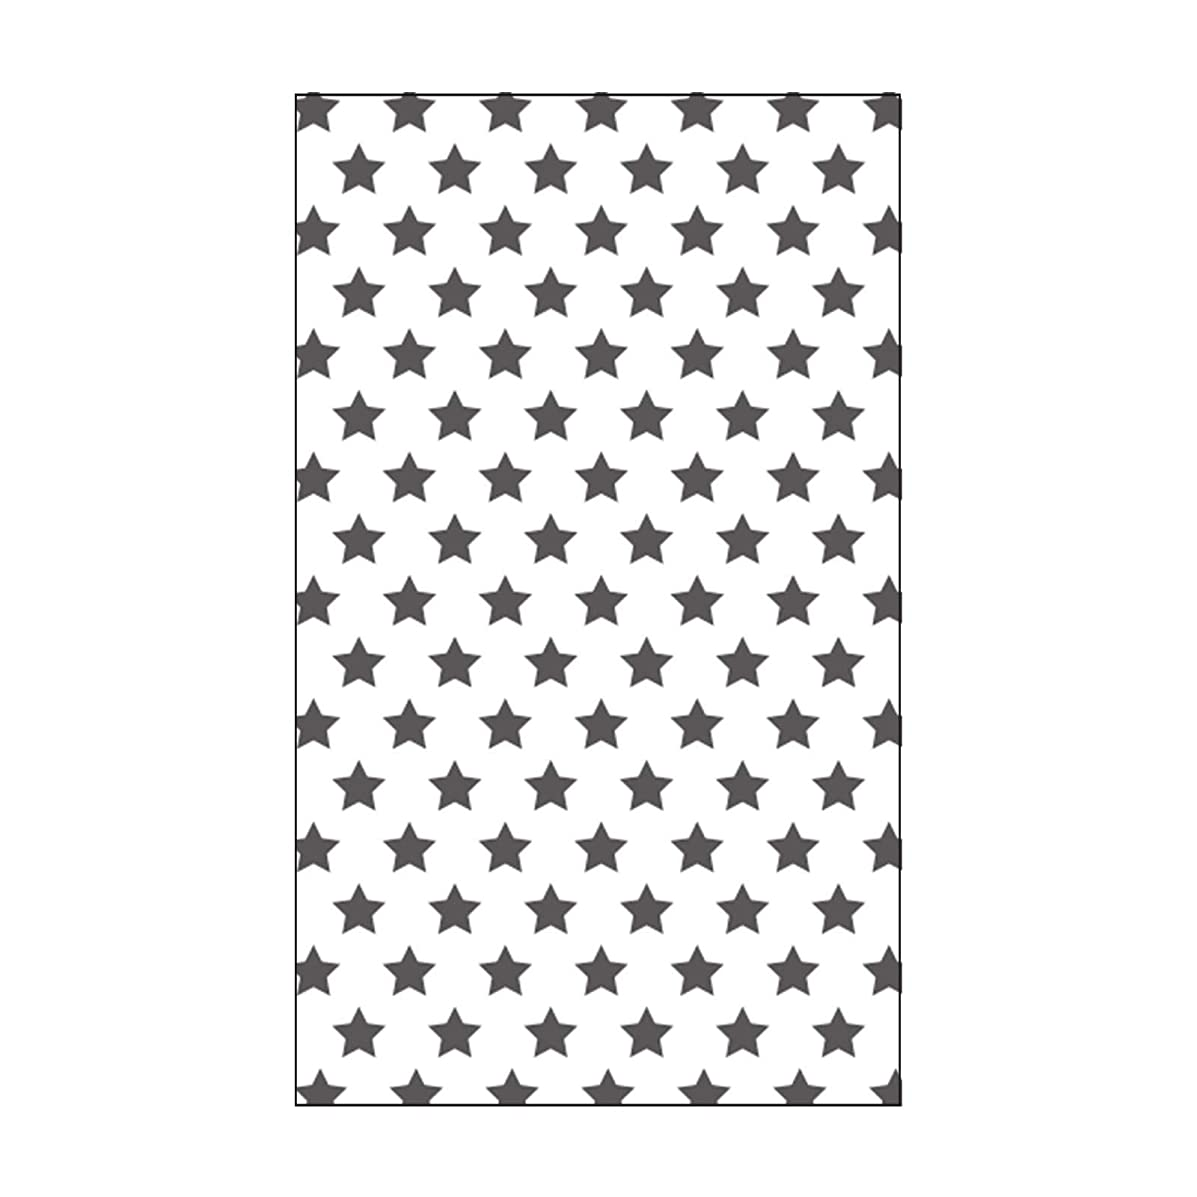 Vaessen Creative Mini Embossing Folder, Stars, for Adding Texture and Dimension to Scrapbook Pages, Cards and Other Papercraft Projects, 3 x 5 inches